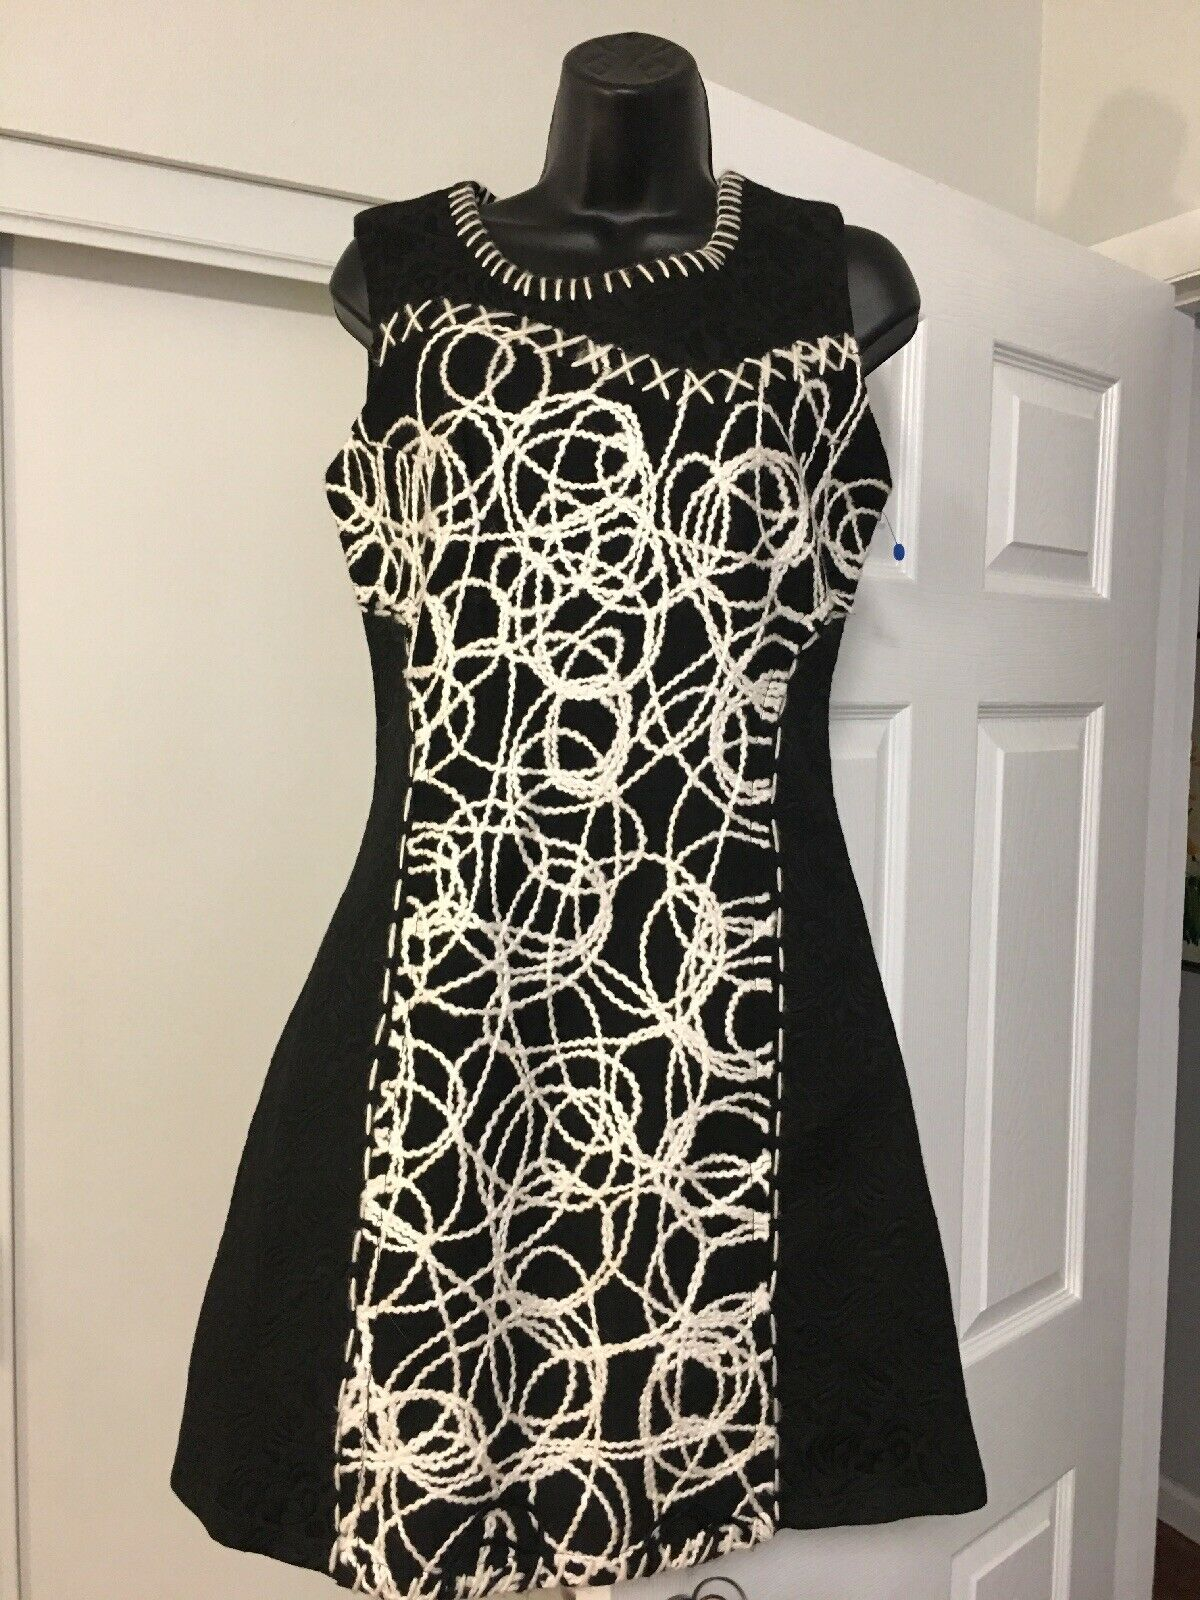 Paparazzi By Biz Dress S schwarz Weiß Embroiderot Embossed Floral Pattern R1